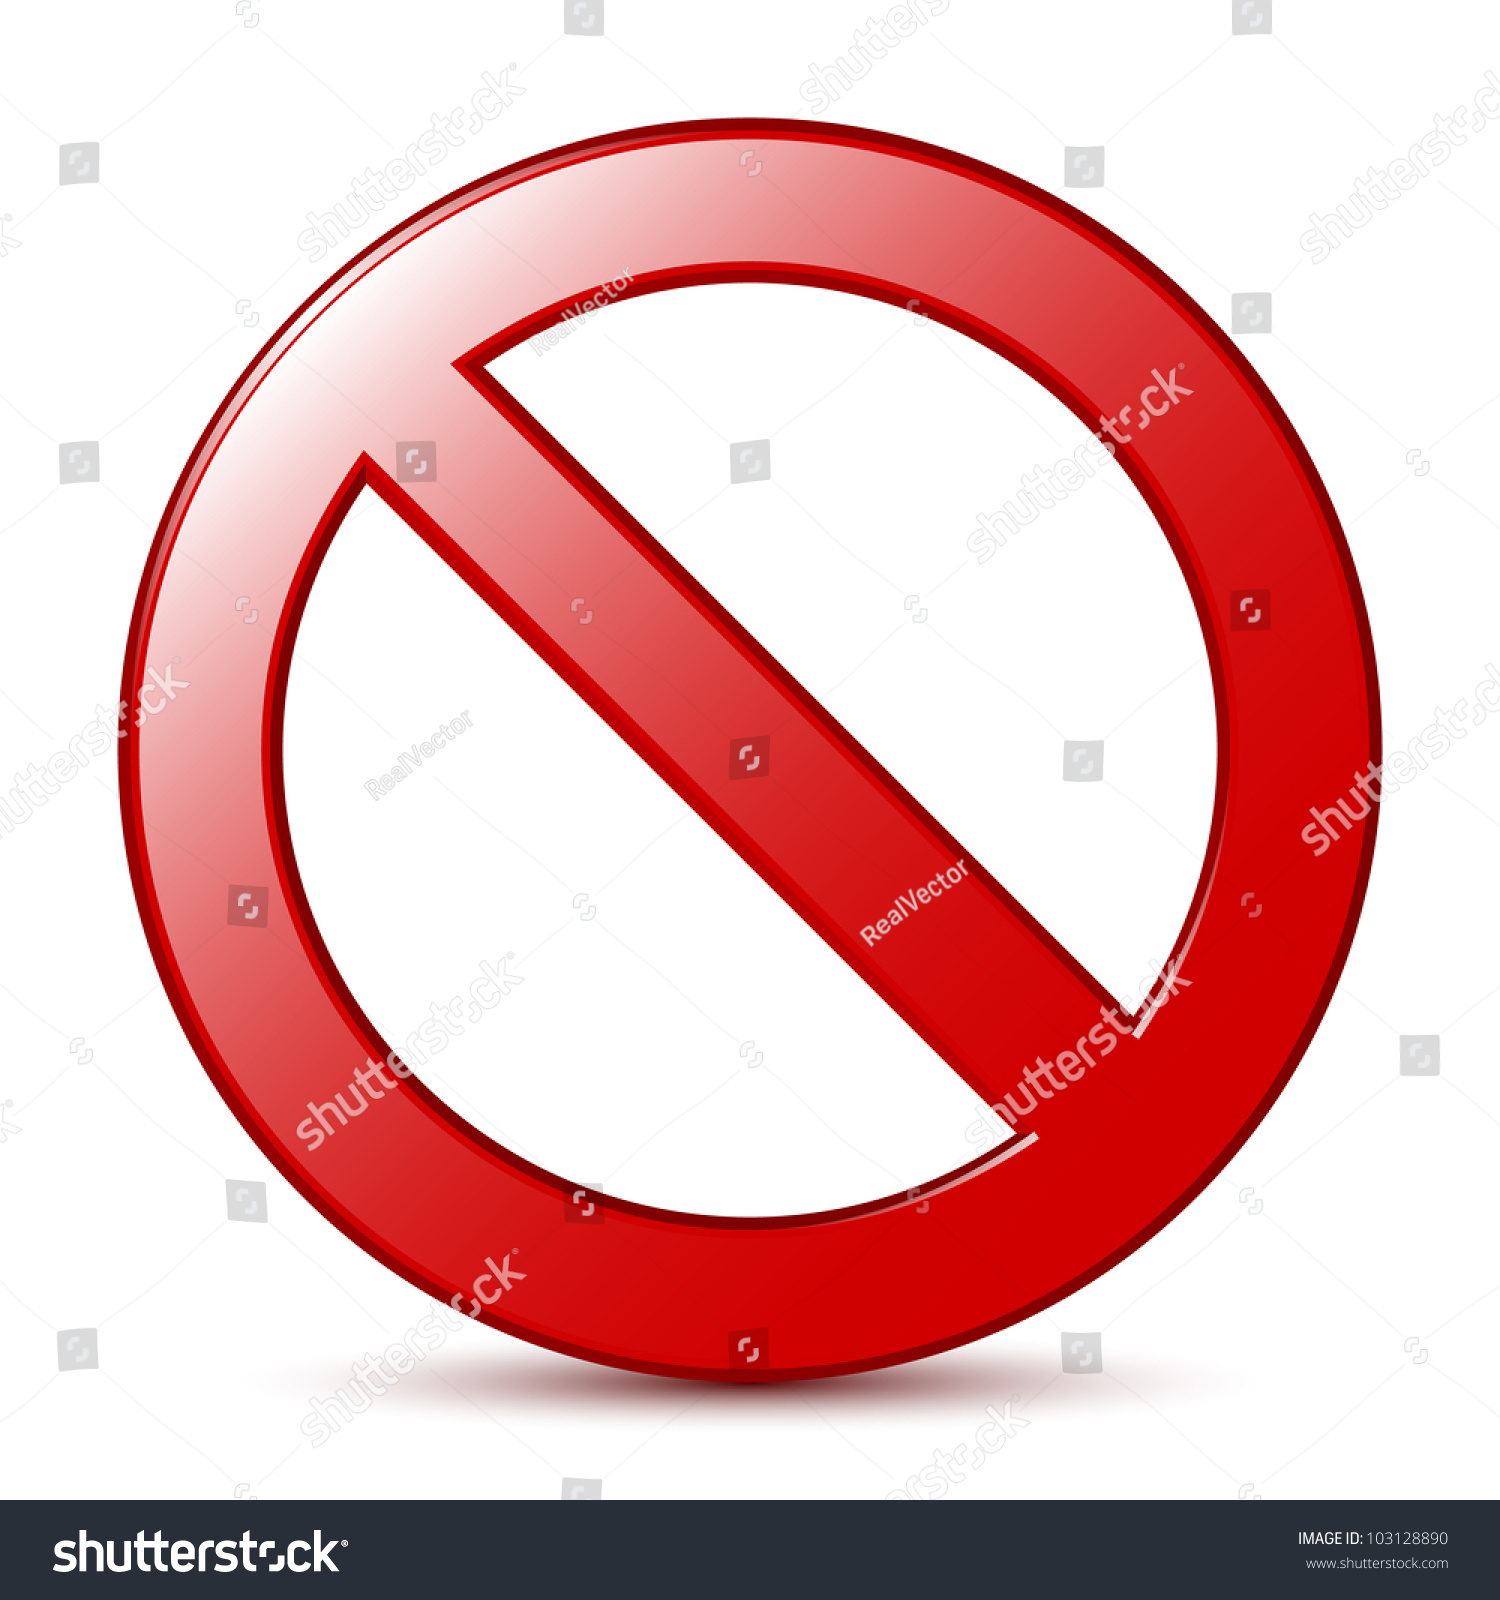 No Sign. Vector - 103128890 : Shutterstock